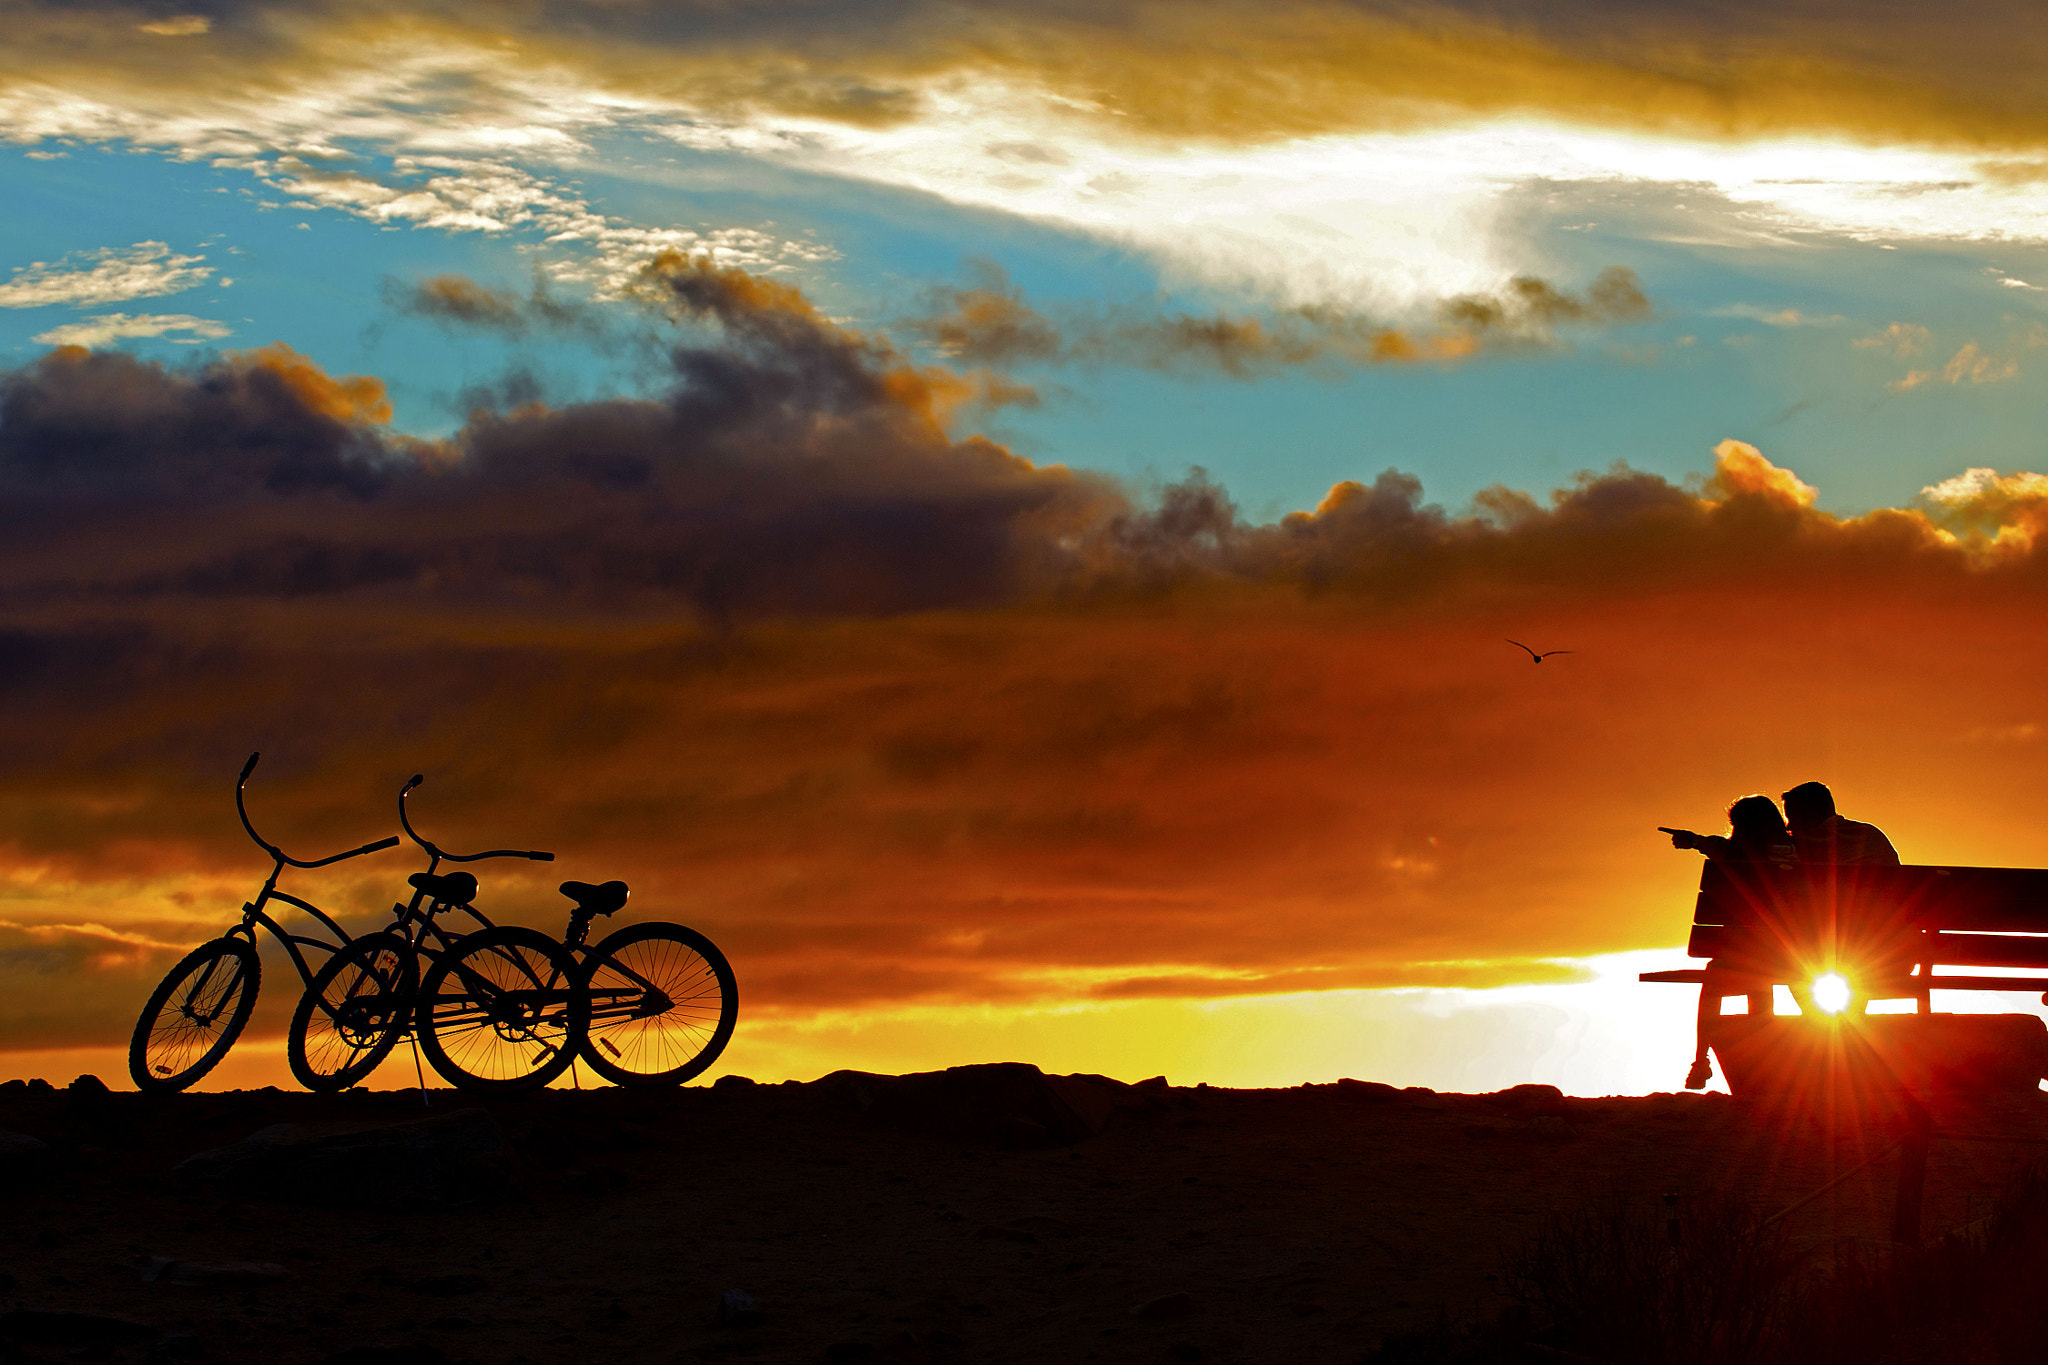 Photograph A Couple with Two Bikes at Sunset in Dana Point. by Rich Cruse on 500px